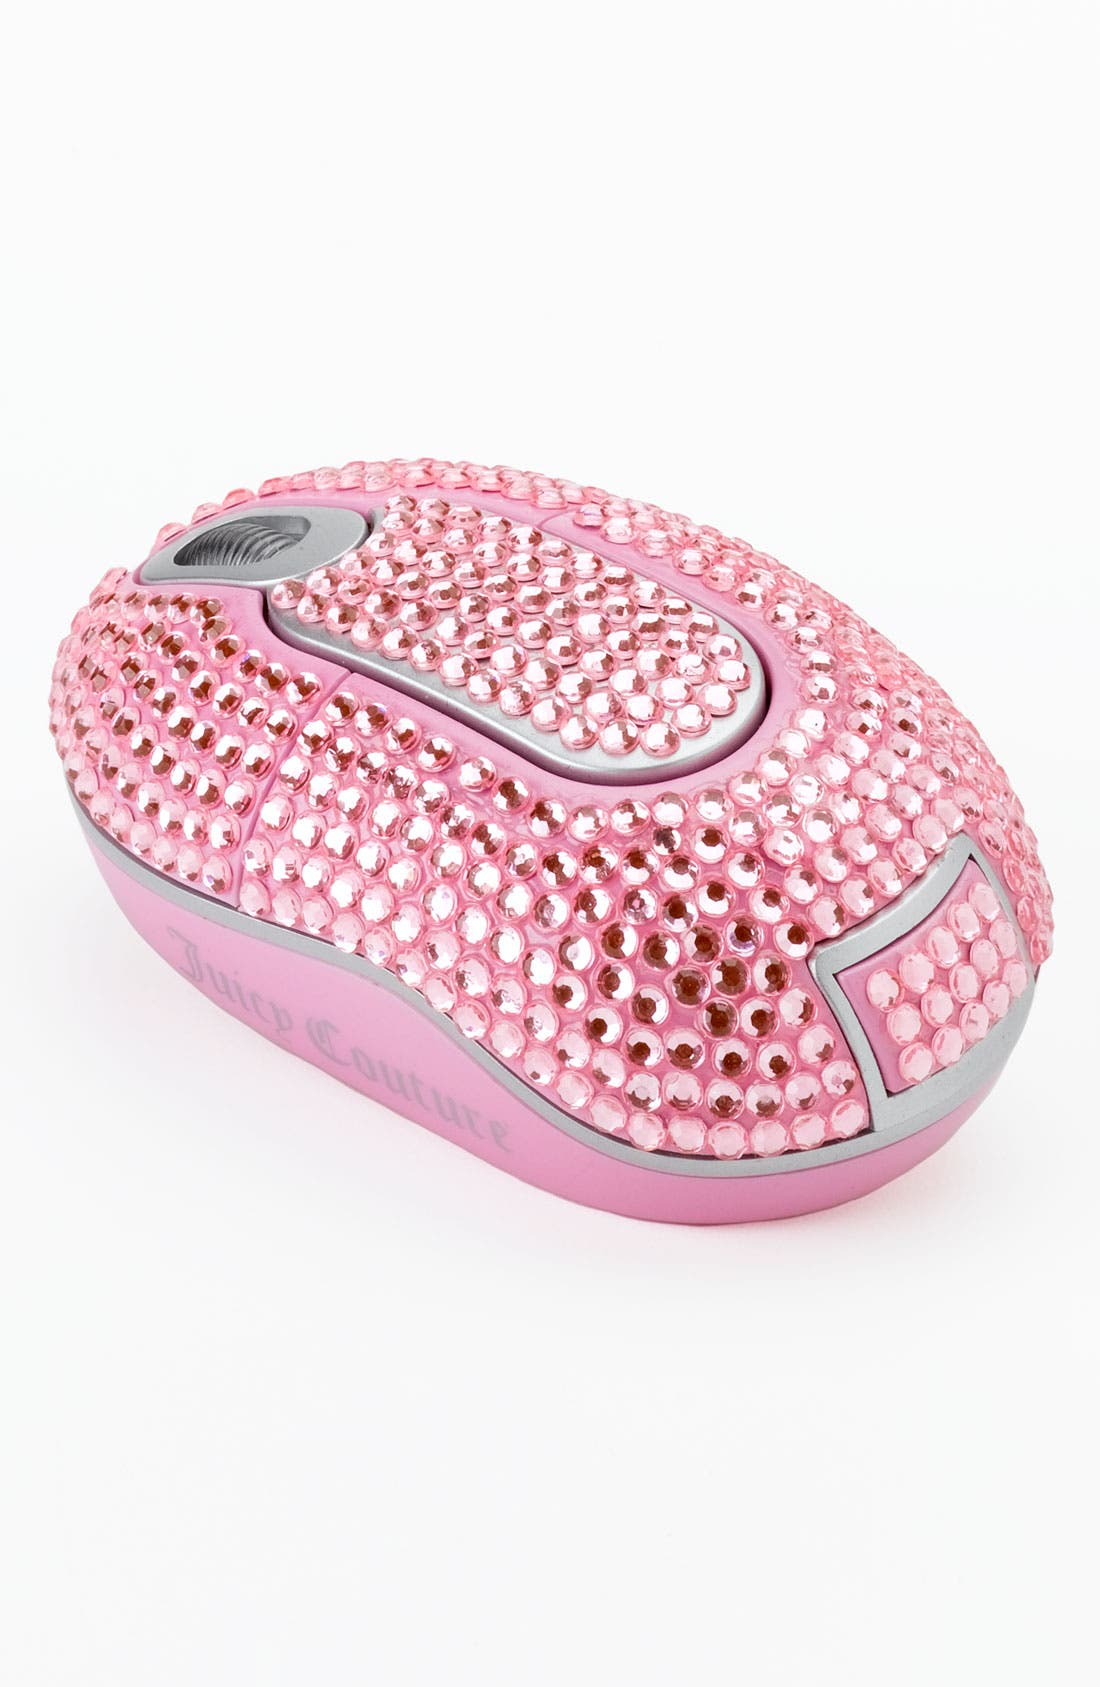 Alternate Image 1 Selected - Juicy Couture 'Blinged Out' Wireless Mouse